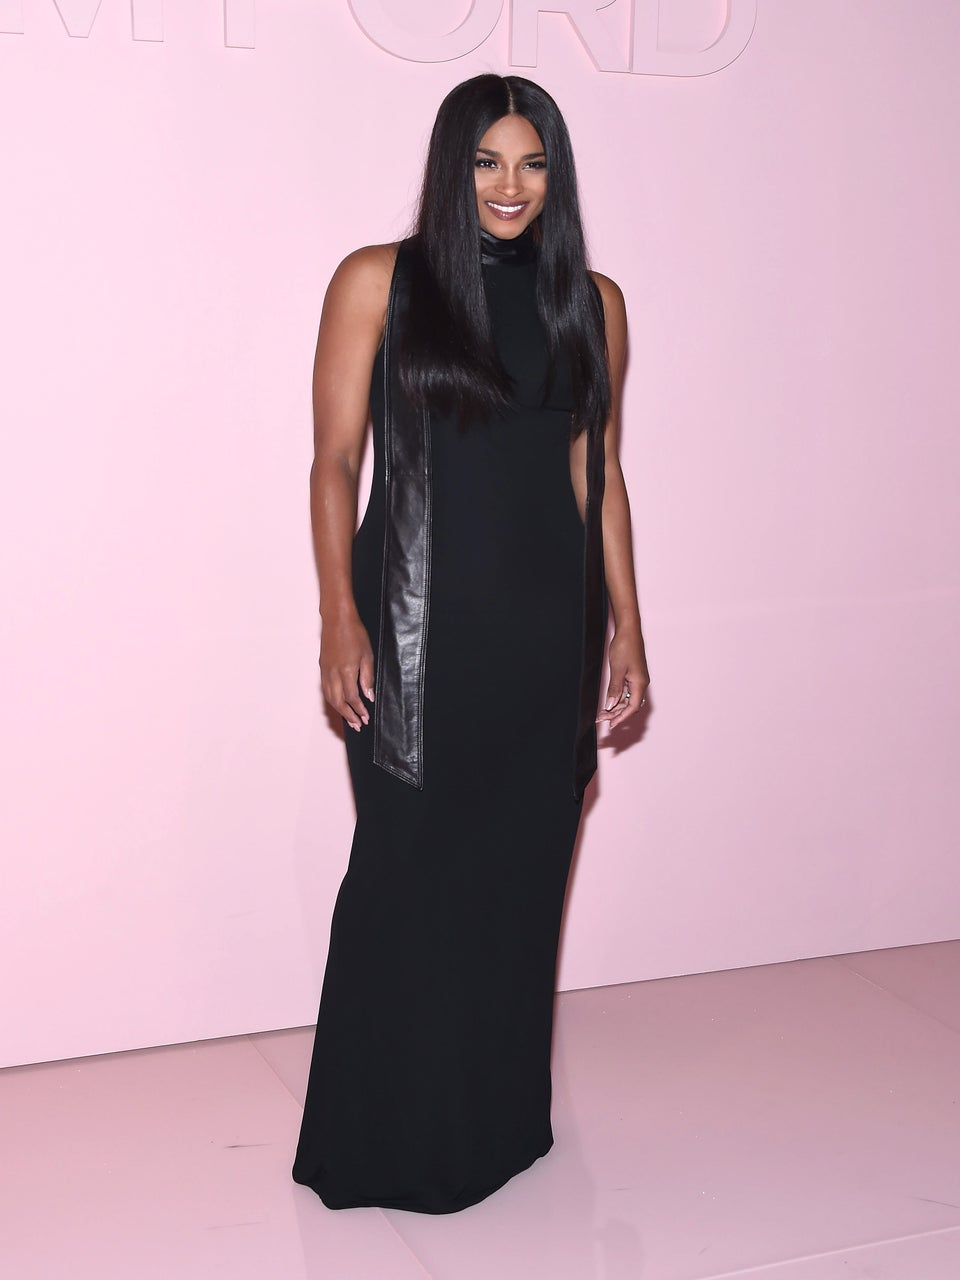 Ciara Responds To Criticism Over Posting Wife Material Video, Explains What She Really Meant By #LevelUp